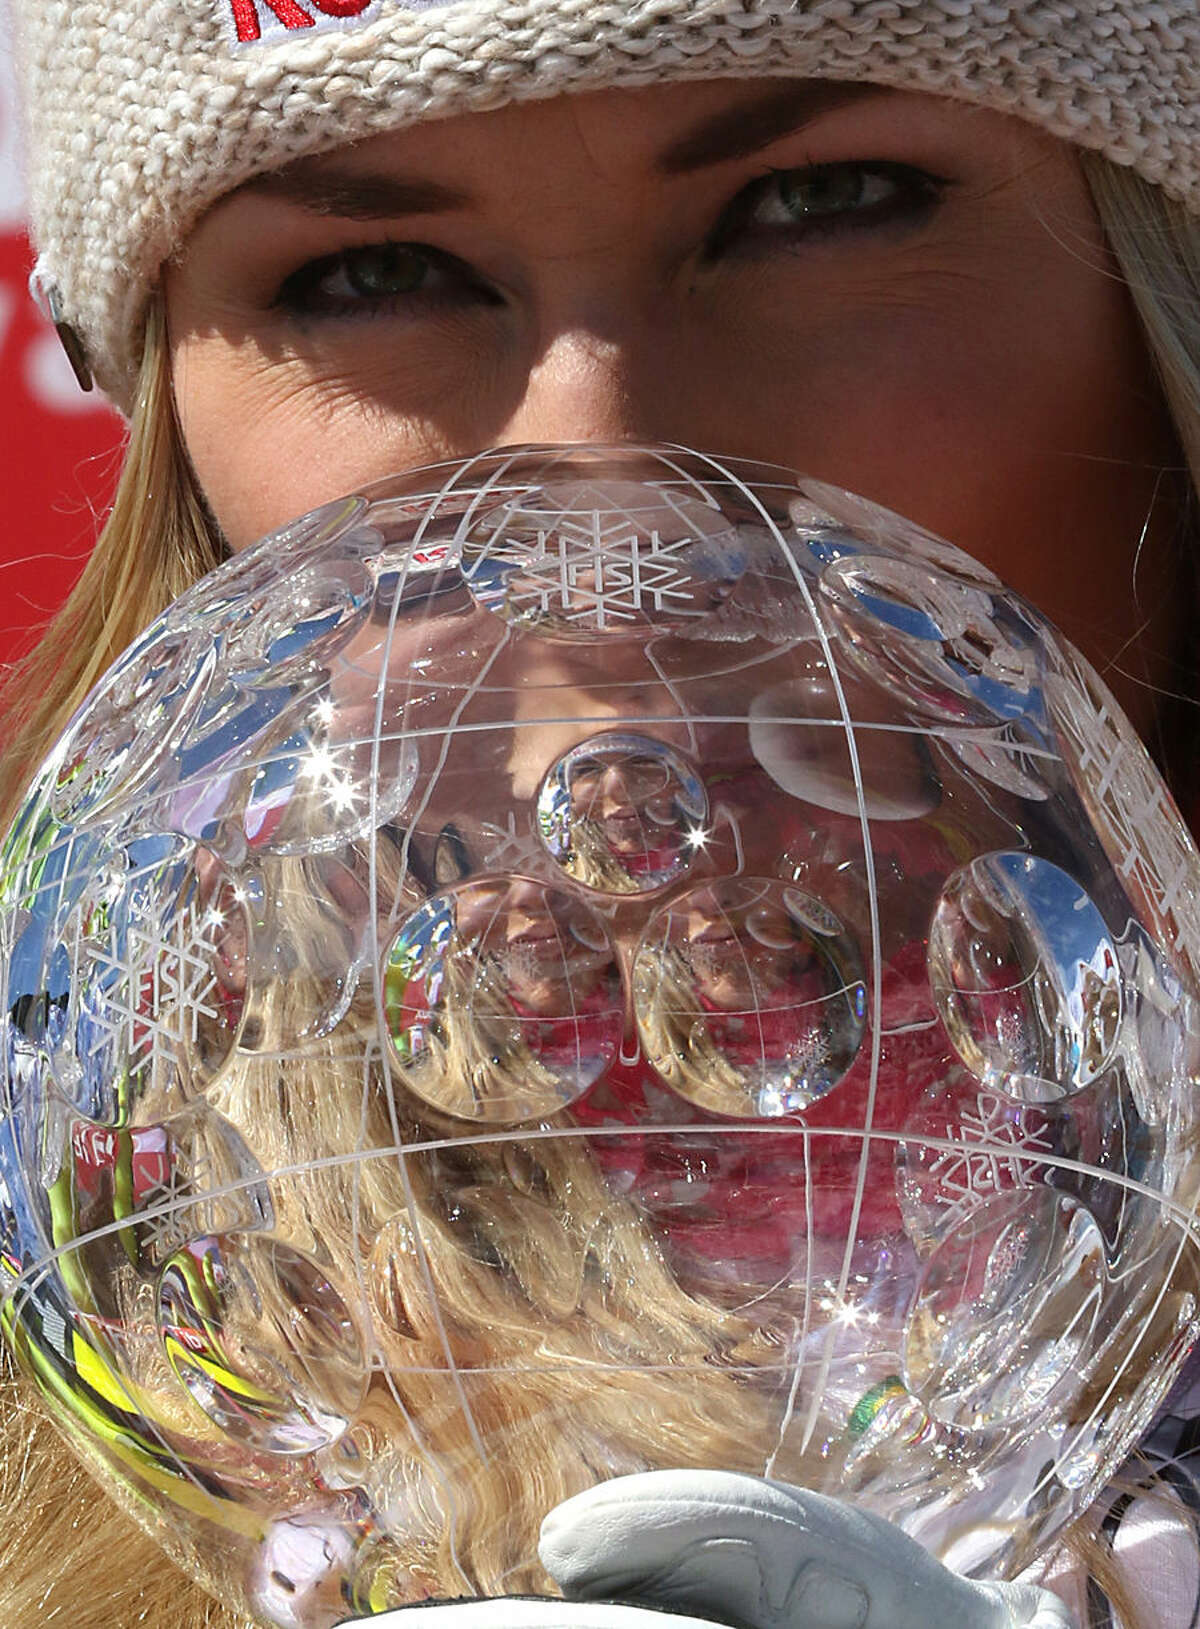 CORRECTS PHOTOGRAPHER'S NAME Lindsey Vonn, of the United States, kisses the alpine ski, women's World Cup downhill's discipline trophy, at the World Cup finals in Meribel, France, Wednesday, March 18, 2015. (AP Photo/Armando Trovati)